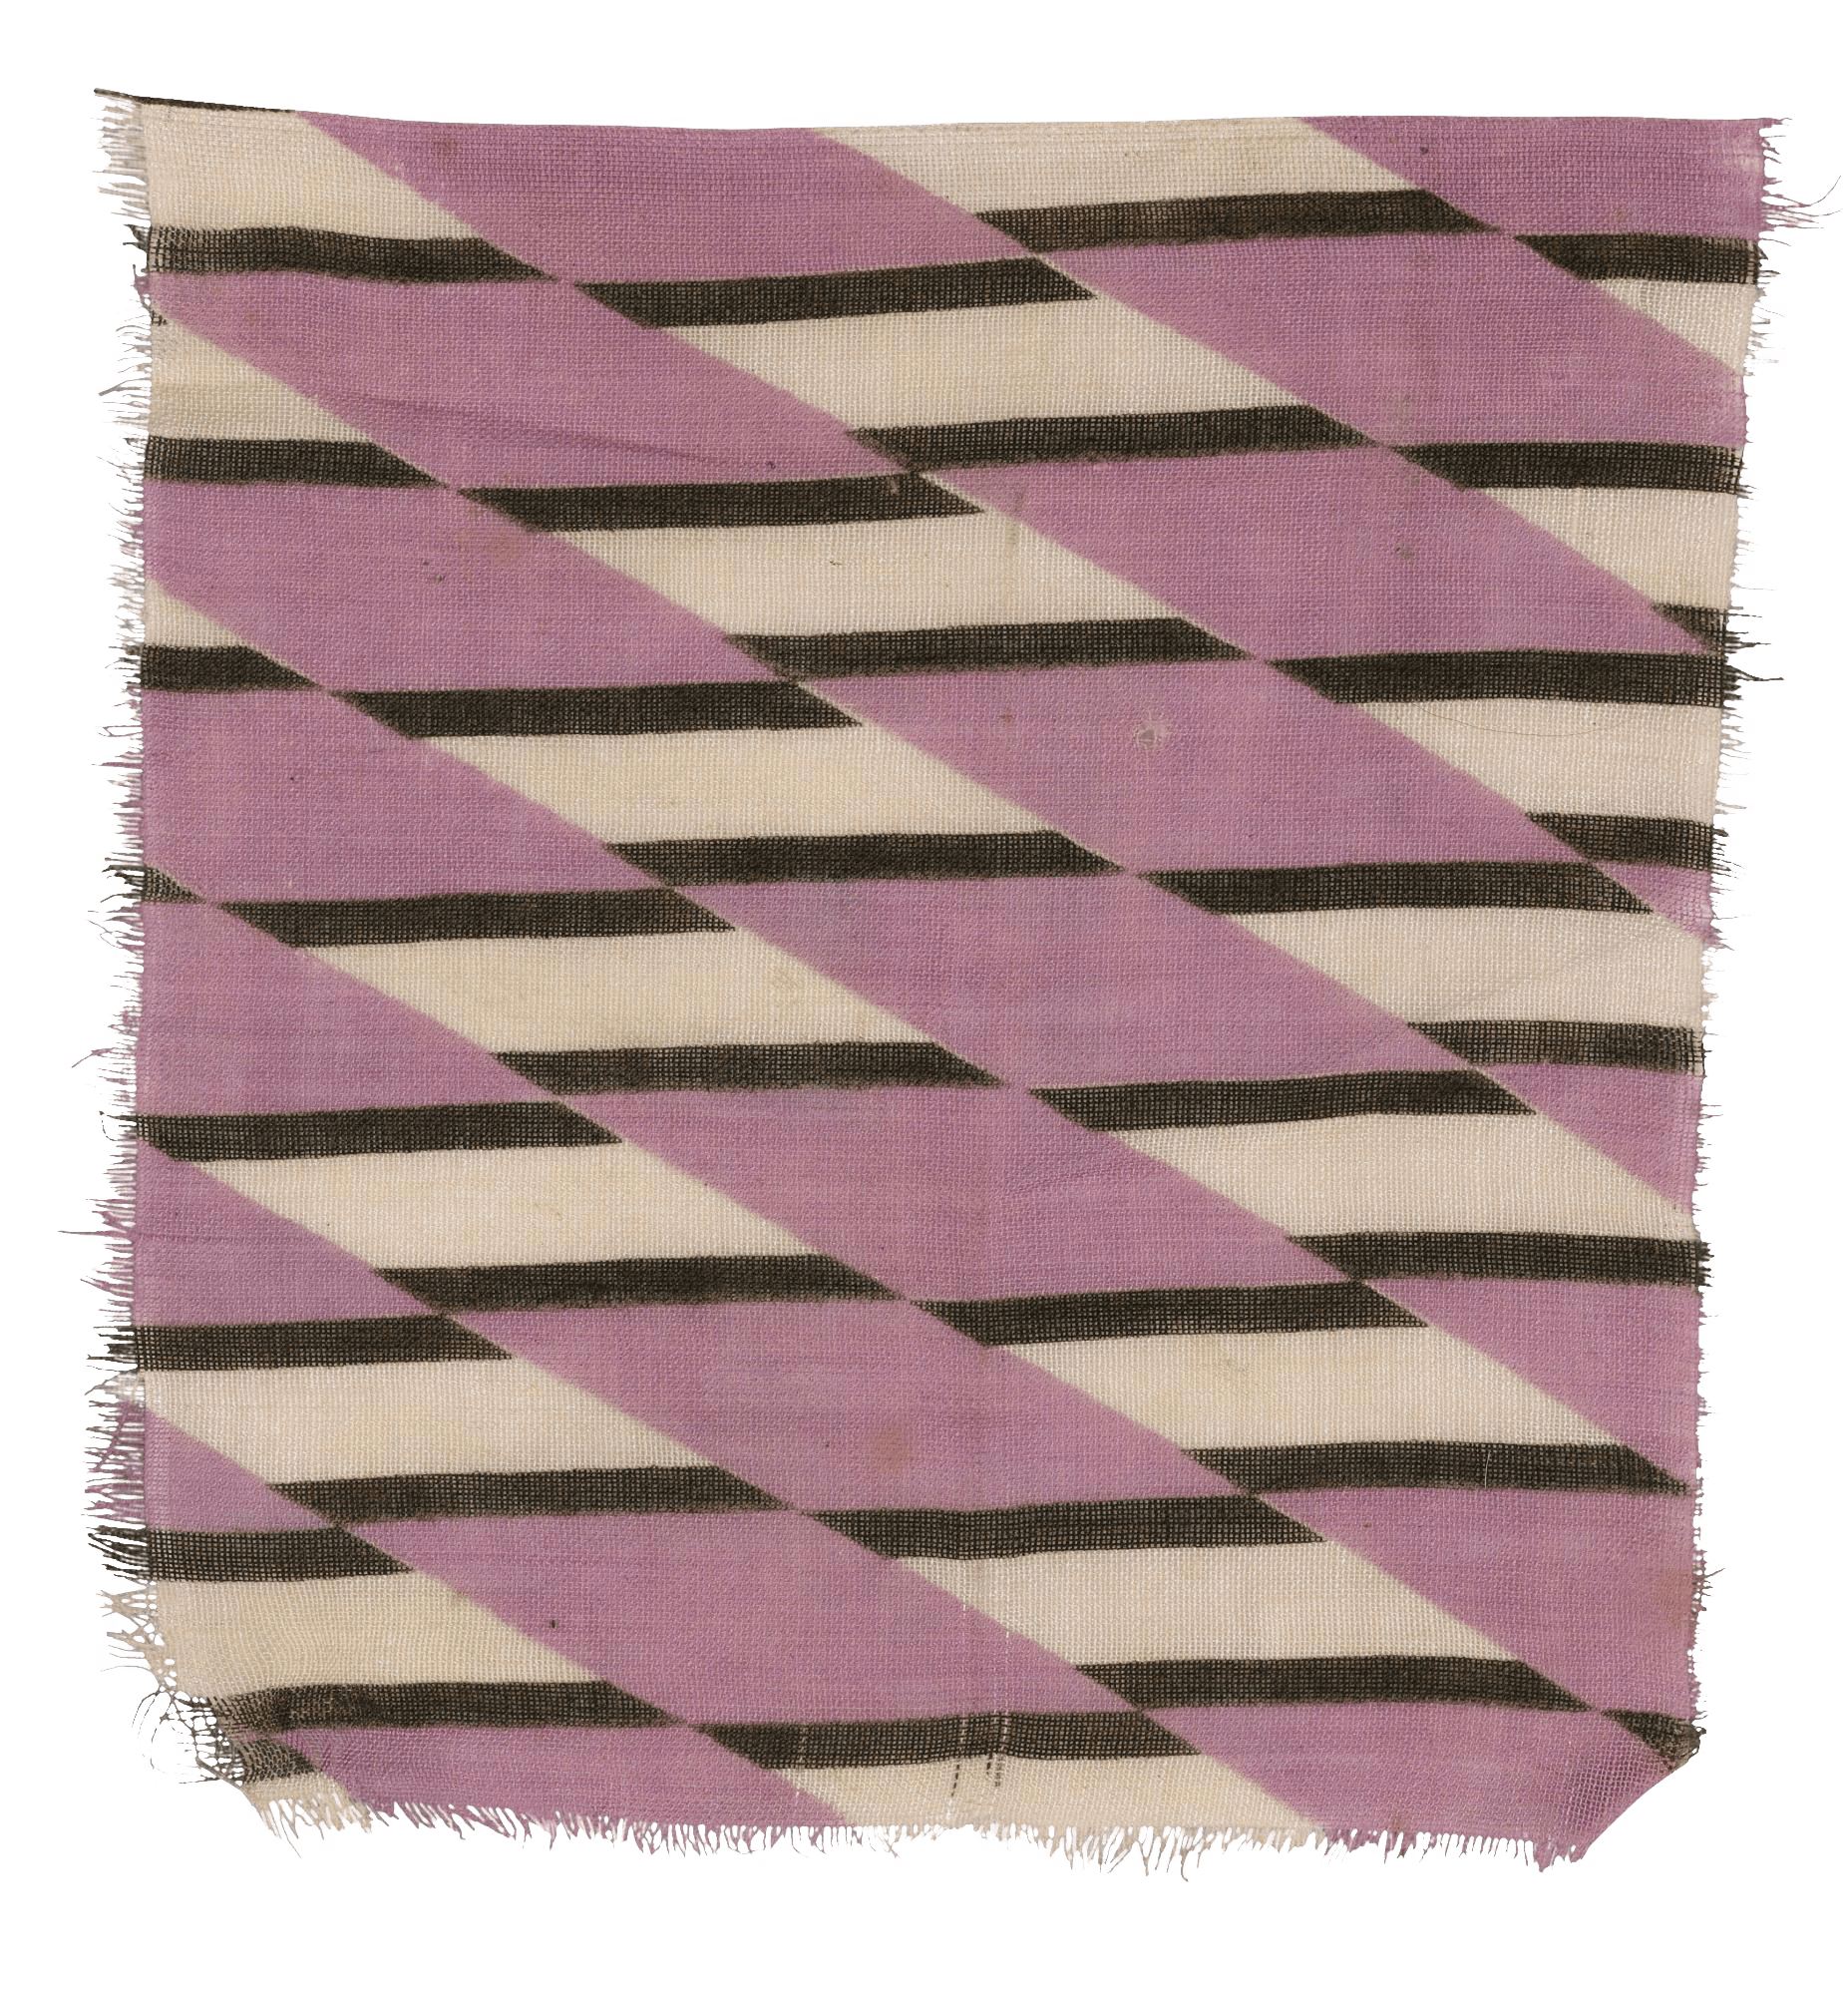 Swatch of Original Fabric, 1924 — Varvara Stepanova